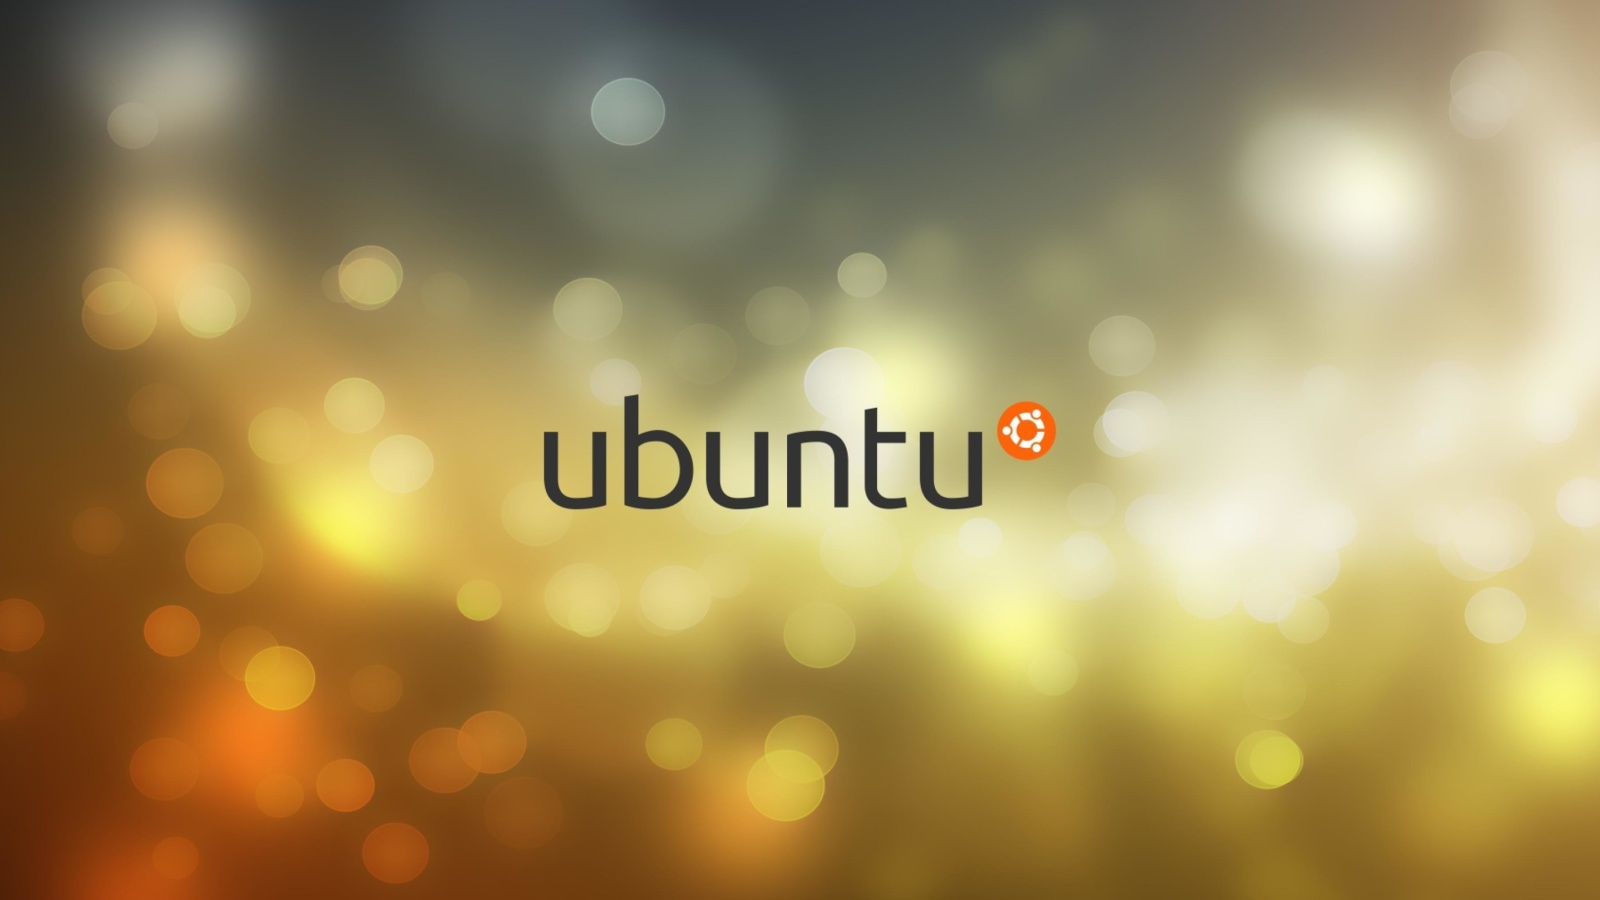 Ubuntu OS screenshot #1 1600x900